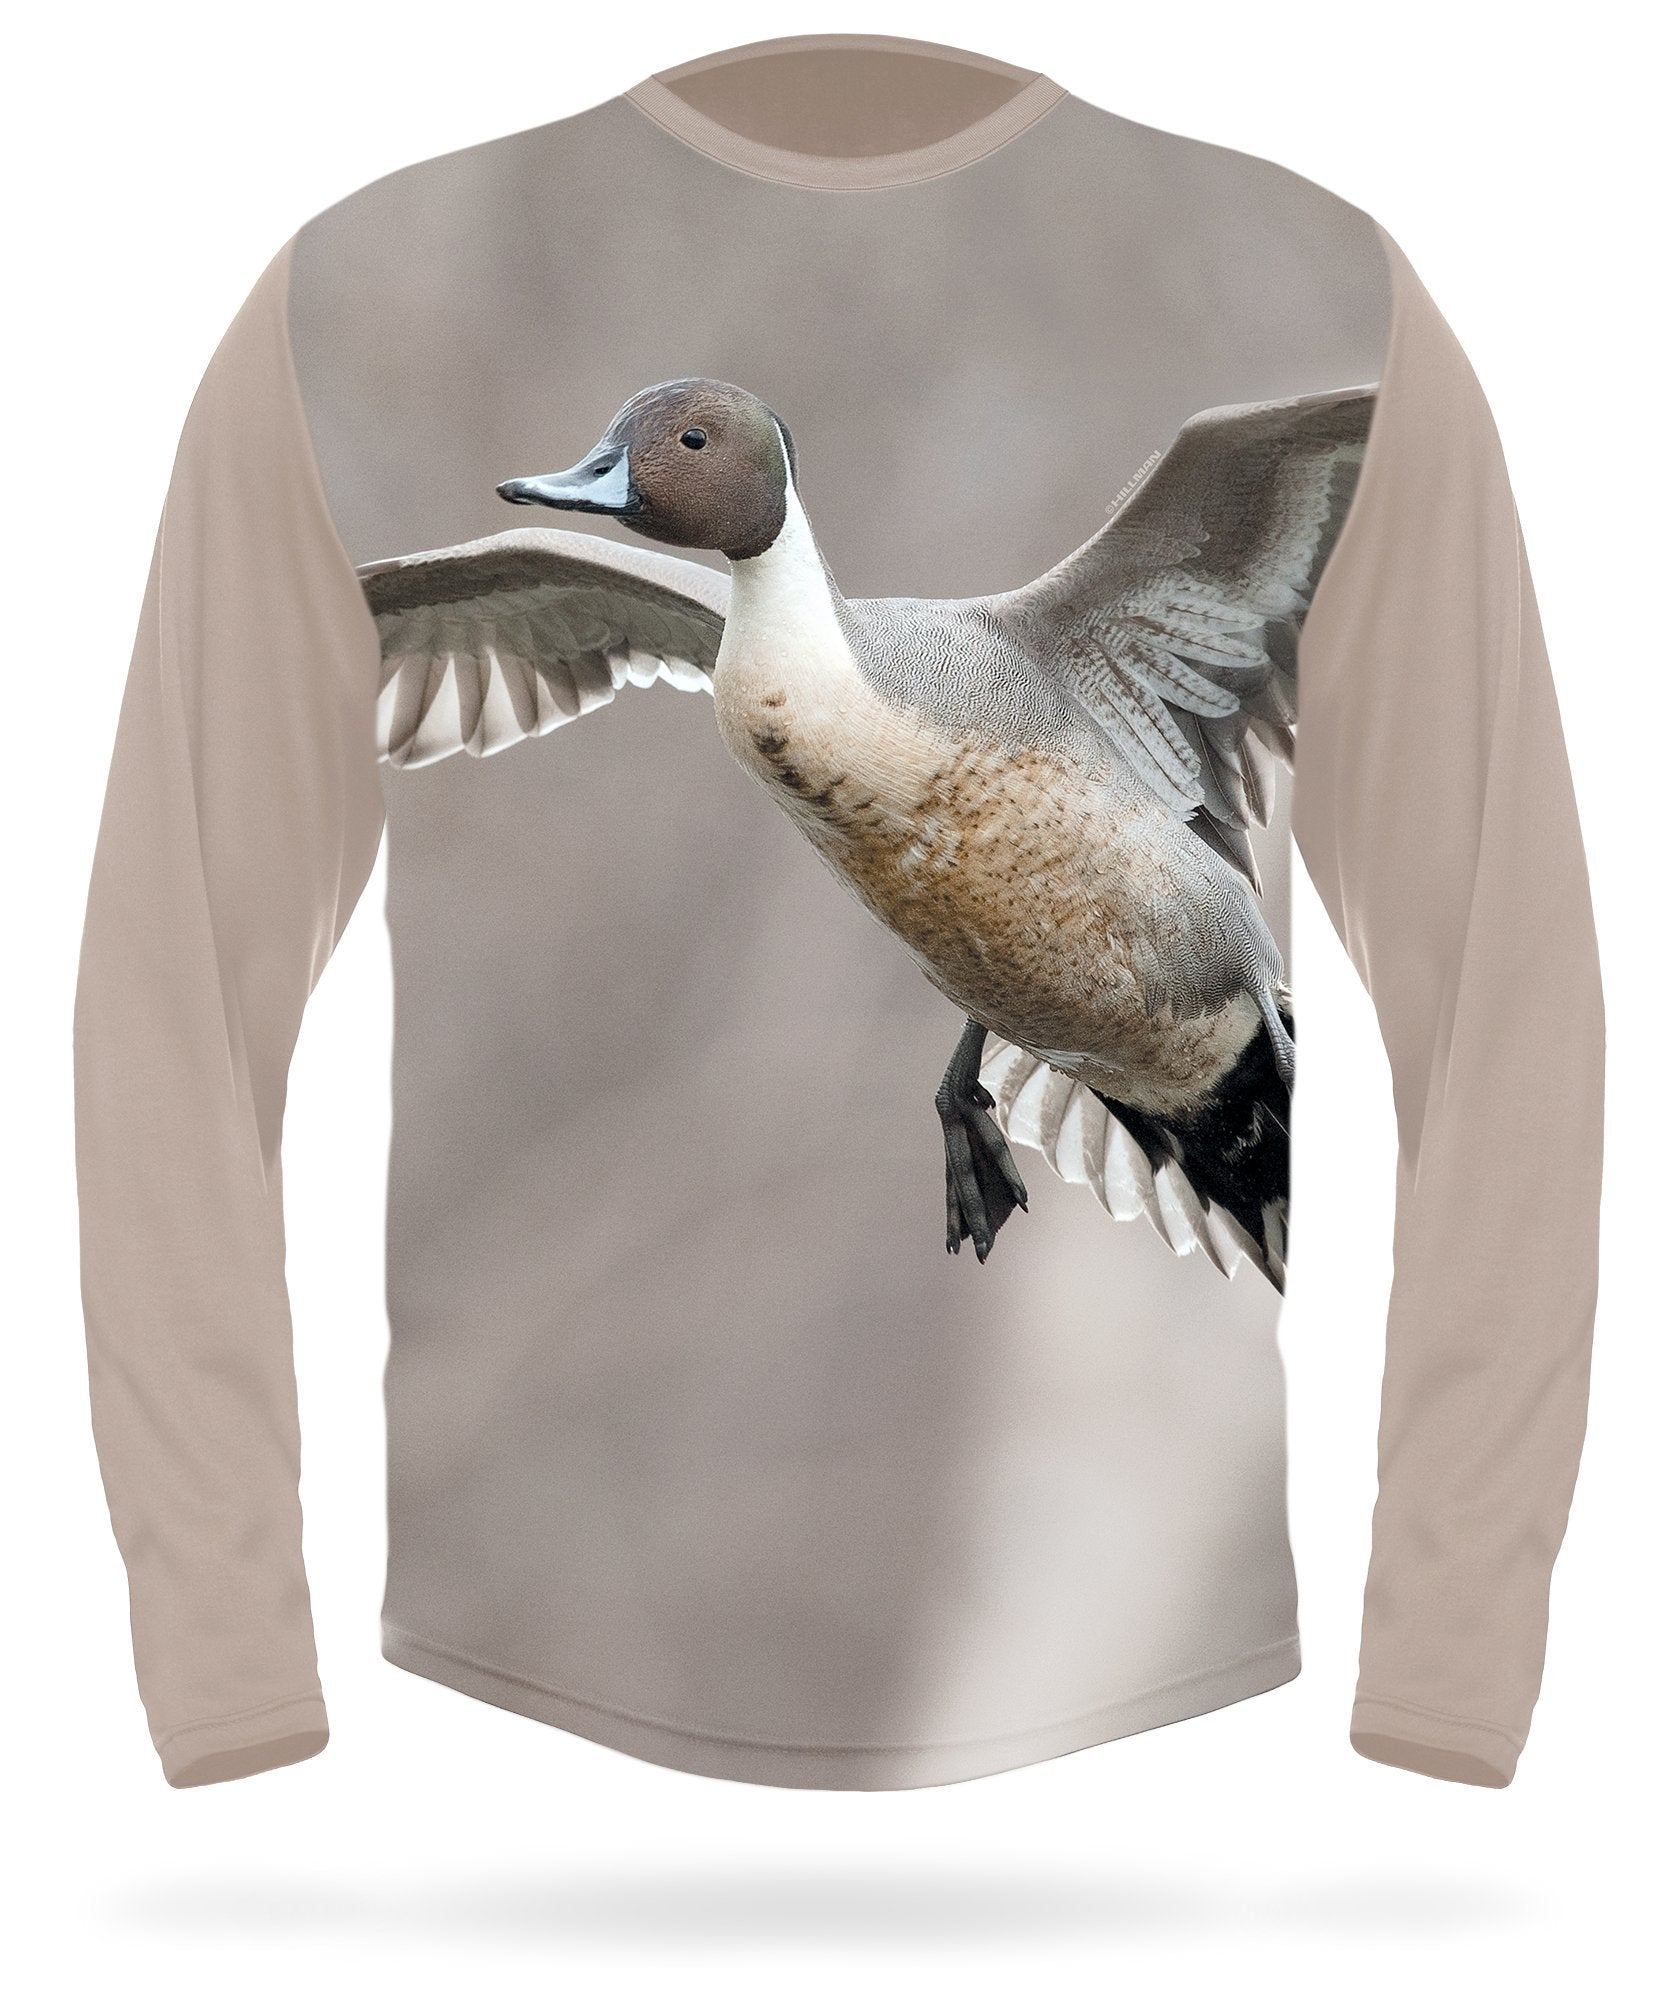 Northern Pintail T-shirt long sleeve  - HILLMAN® hunting gear